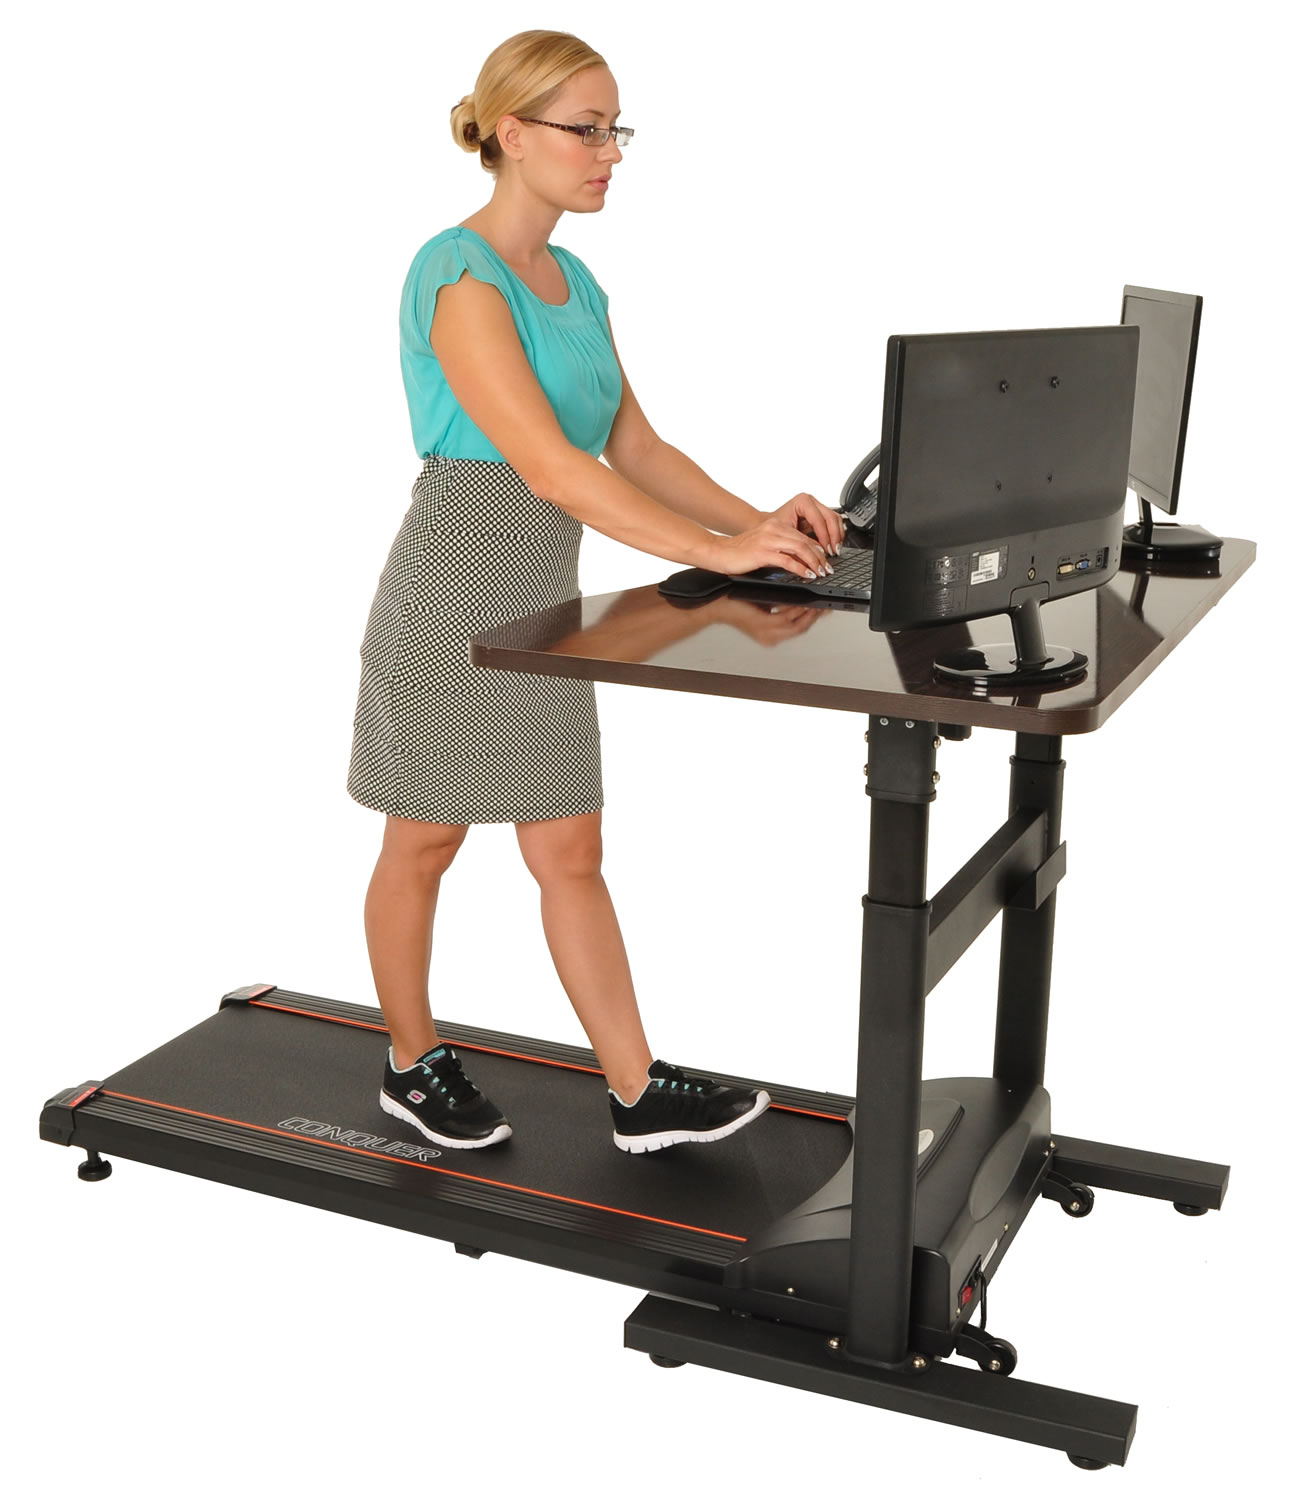 Treadmill For Desk At Work: Conquer Electric Treadmill Standing / Walking Desk